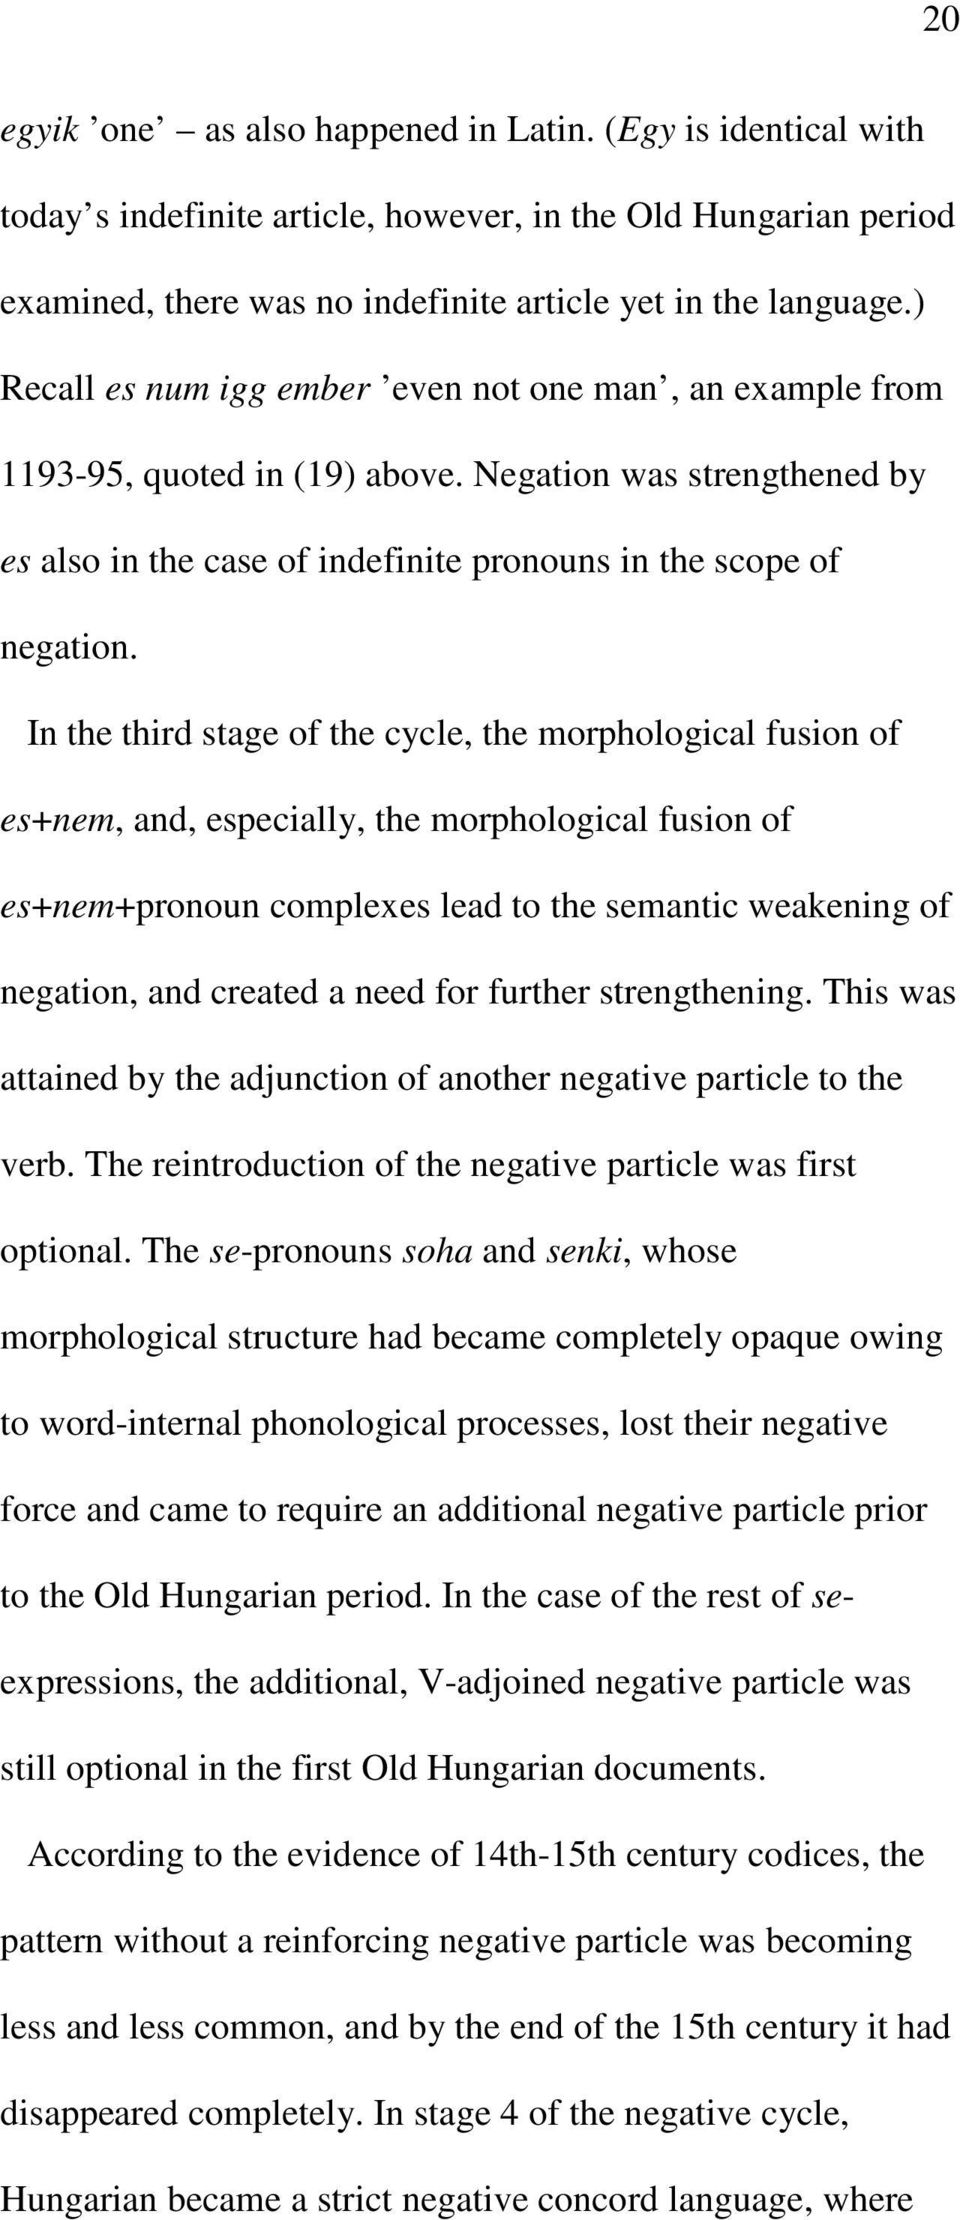 In the third stage of the cycle, the morphological fusion of es+nem, and, especially, the morphological fusion of es+nem+pronoun complexes lead to the semantic weakening of negation, and created a